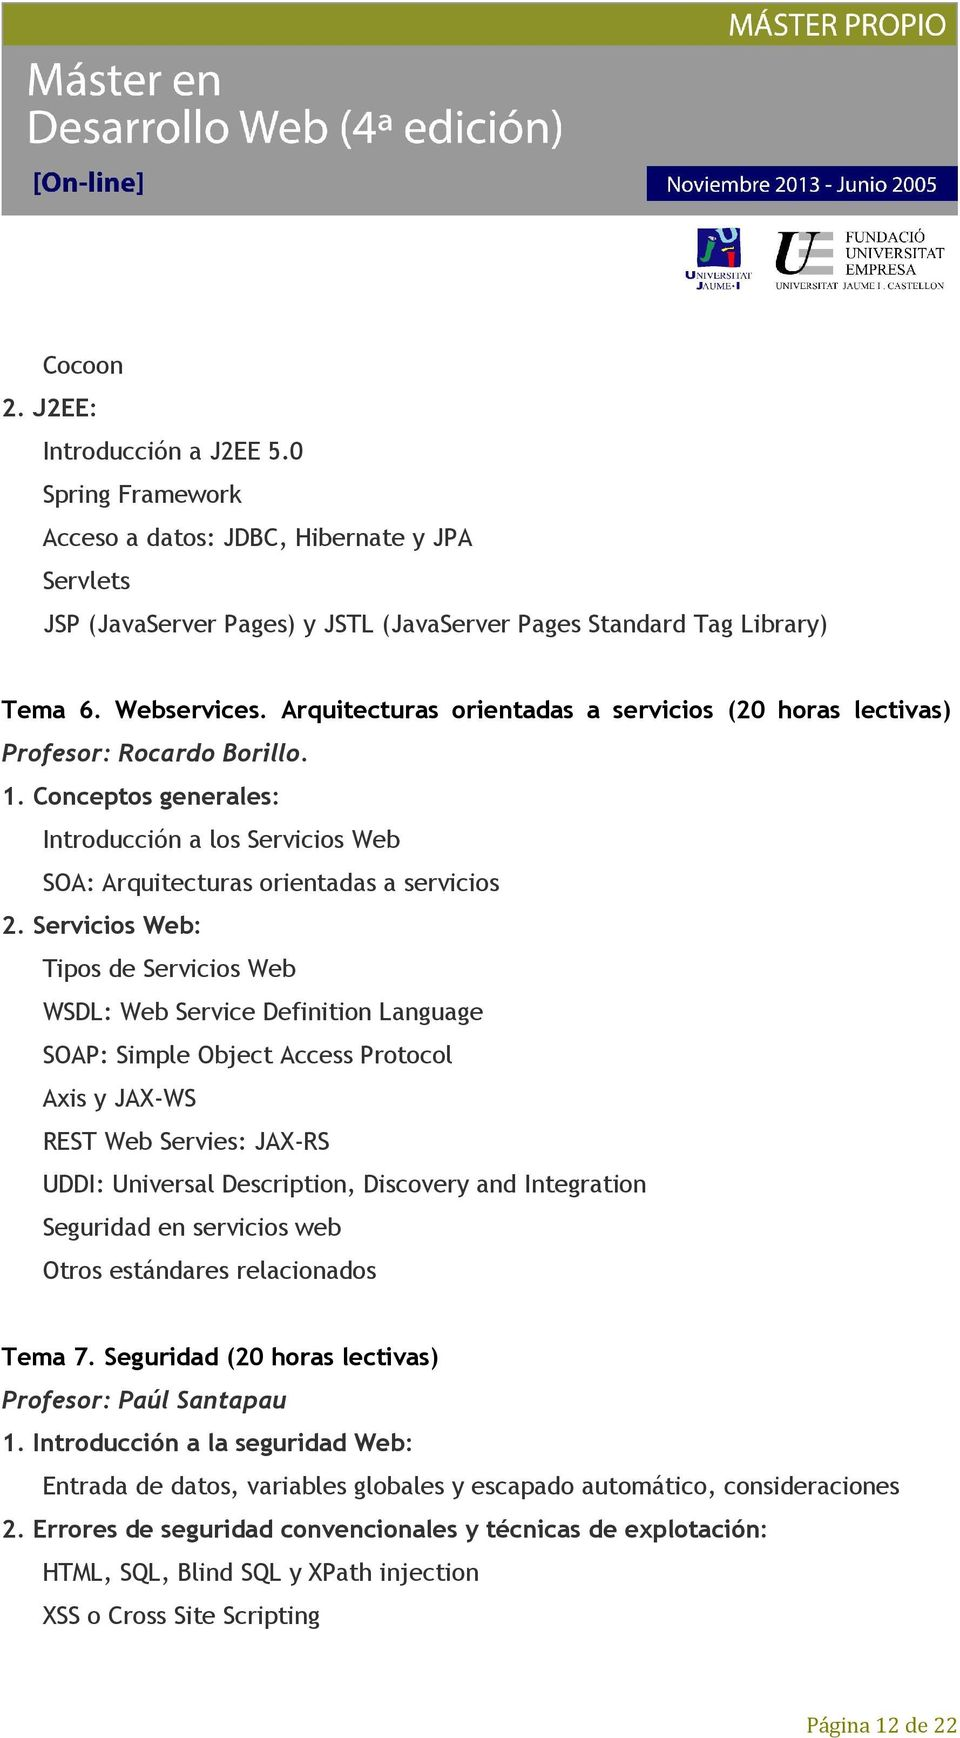 Servicios Web: Tipos de Servicios Web WSDL: Web Service Definition Language SOAP: Simple Object Access Protocol Axis y JAX-WS REST Web Servies: JAX-RS UDDI: Universal Description, Discovery and